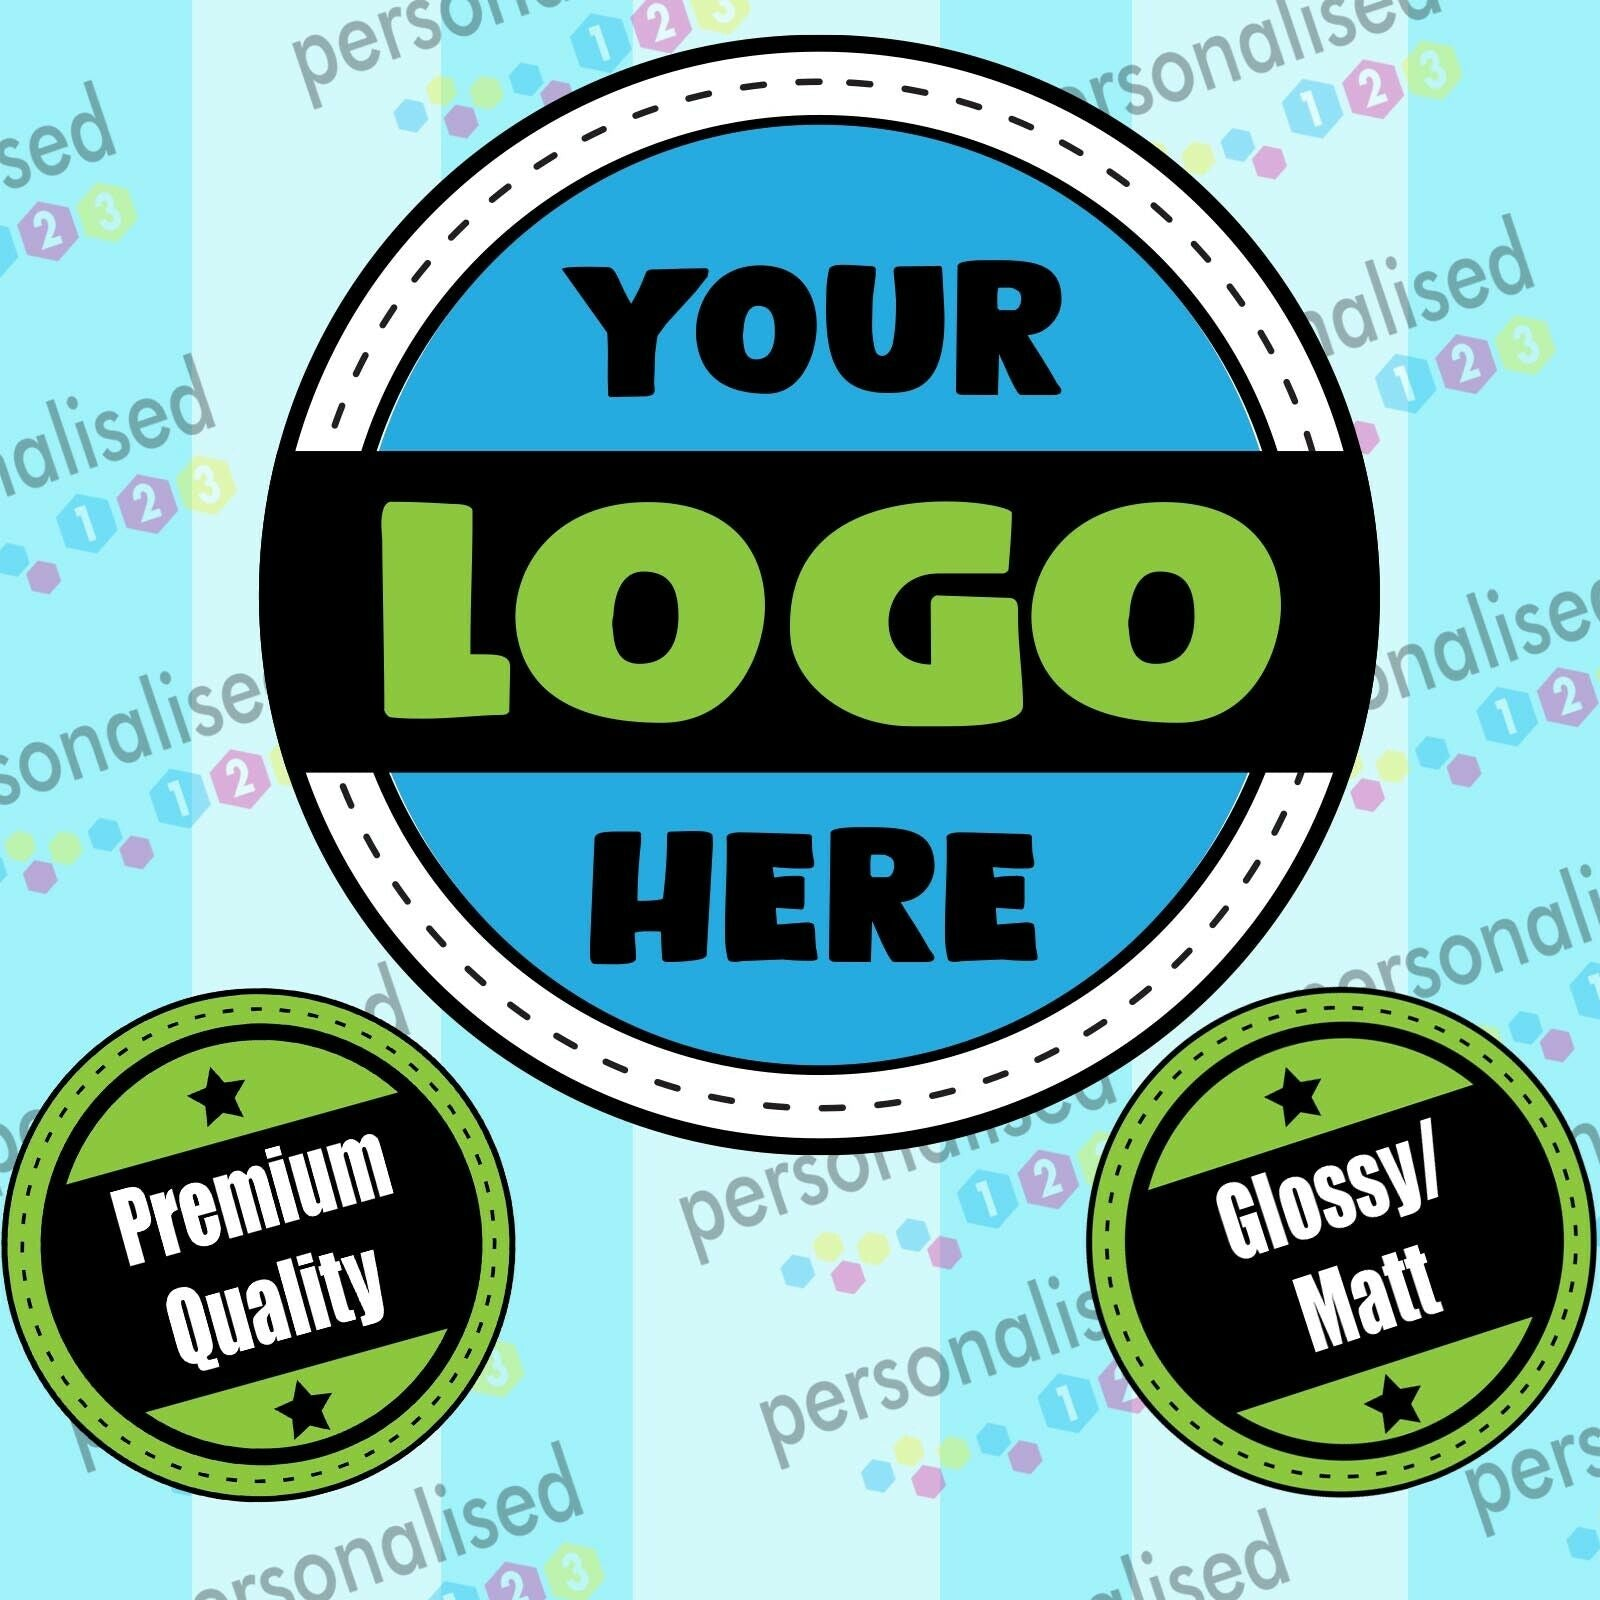 Personalised Logo Stickers Custom Business Labels Round  Printed Address Labels Any Text Stickers - Glossy